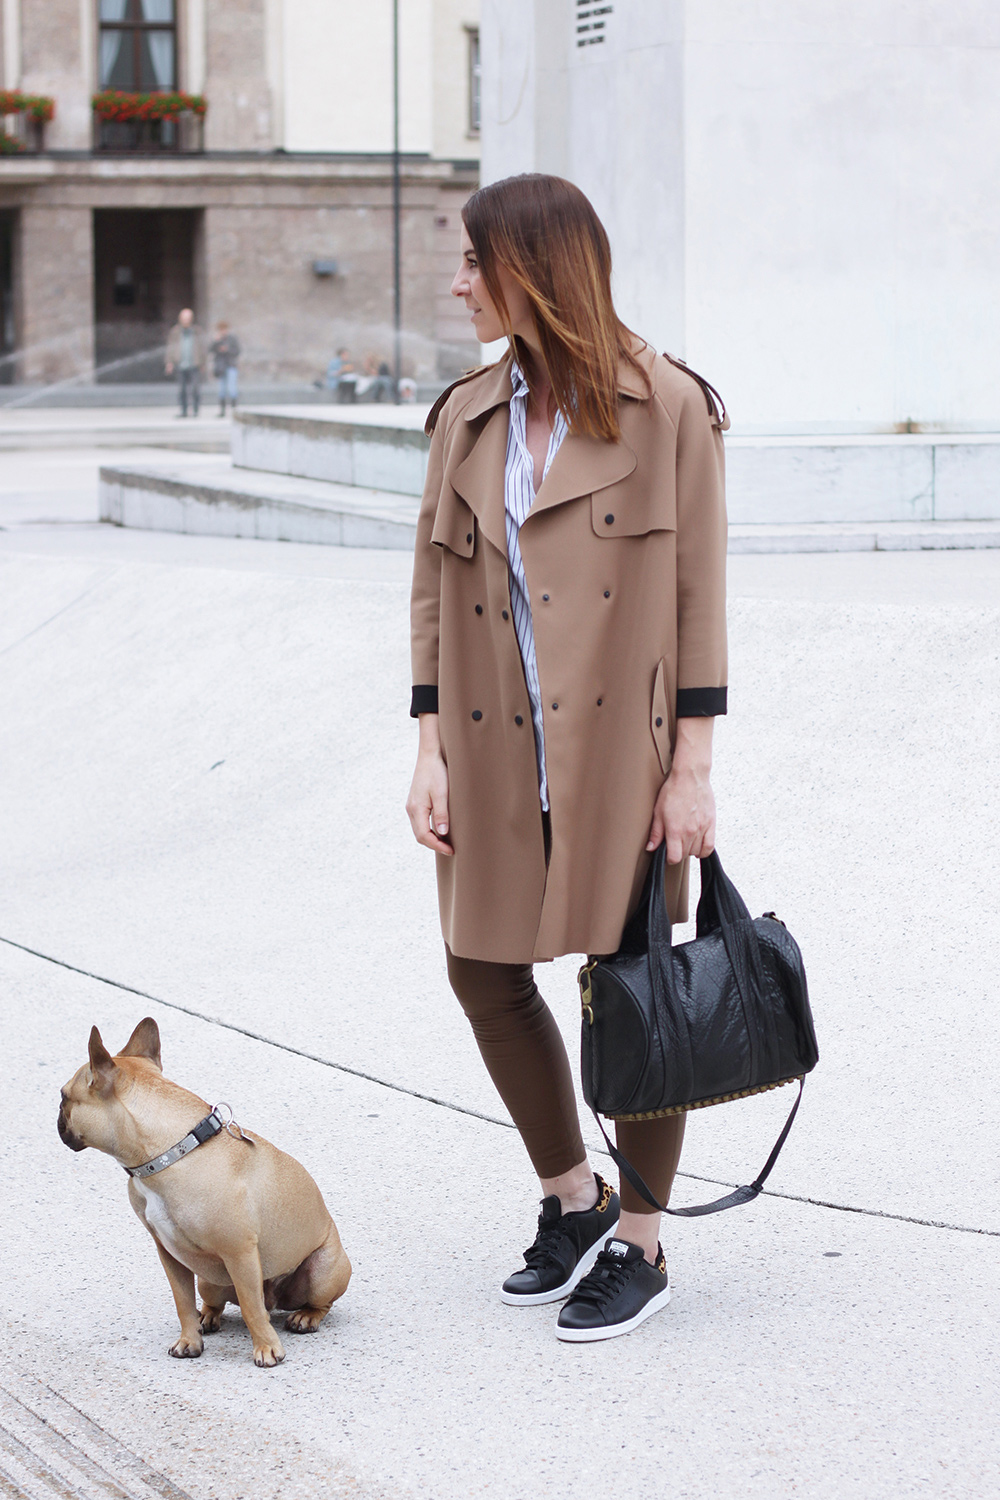 who is mocca, blogger, tirol, tirolblog, streetstyle, innsbruck, fashionblogger österreich, fashionblogger germany, trenchcoat topshop, lederhose zara, stan smith schwarz leopard, french bulldog, frenchie, alexander wang rocco bag, second hand, streifenbluse aglini, whoismocca.com